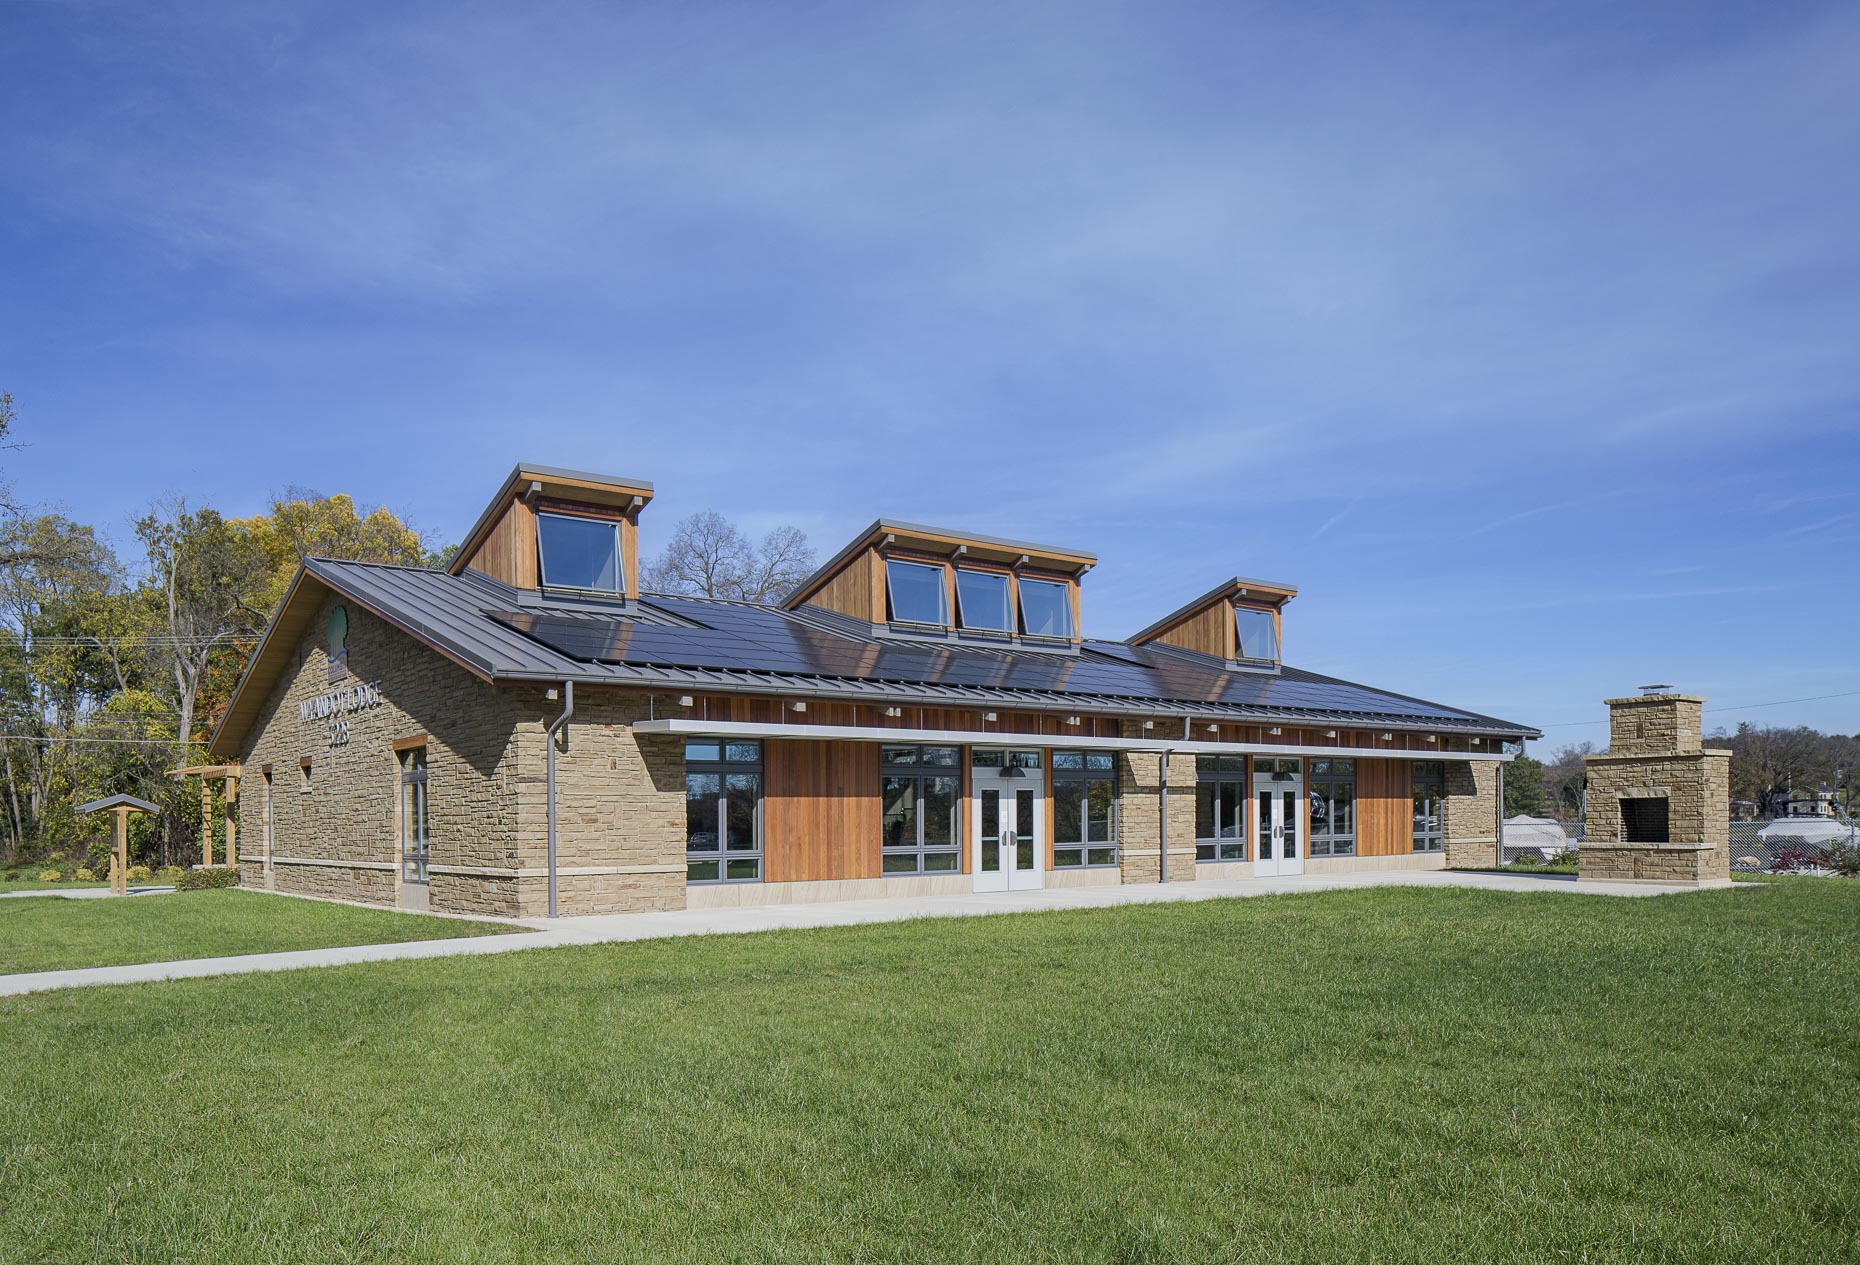 Columbus Recreation & Parks Wyandot Lodge by M+A Architects photographed by Lauren K Davis based in Columbus, Ohio